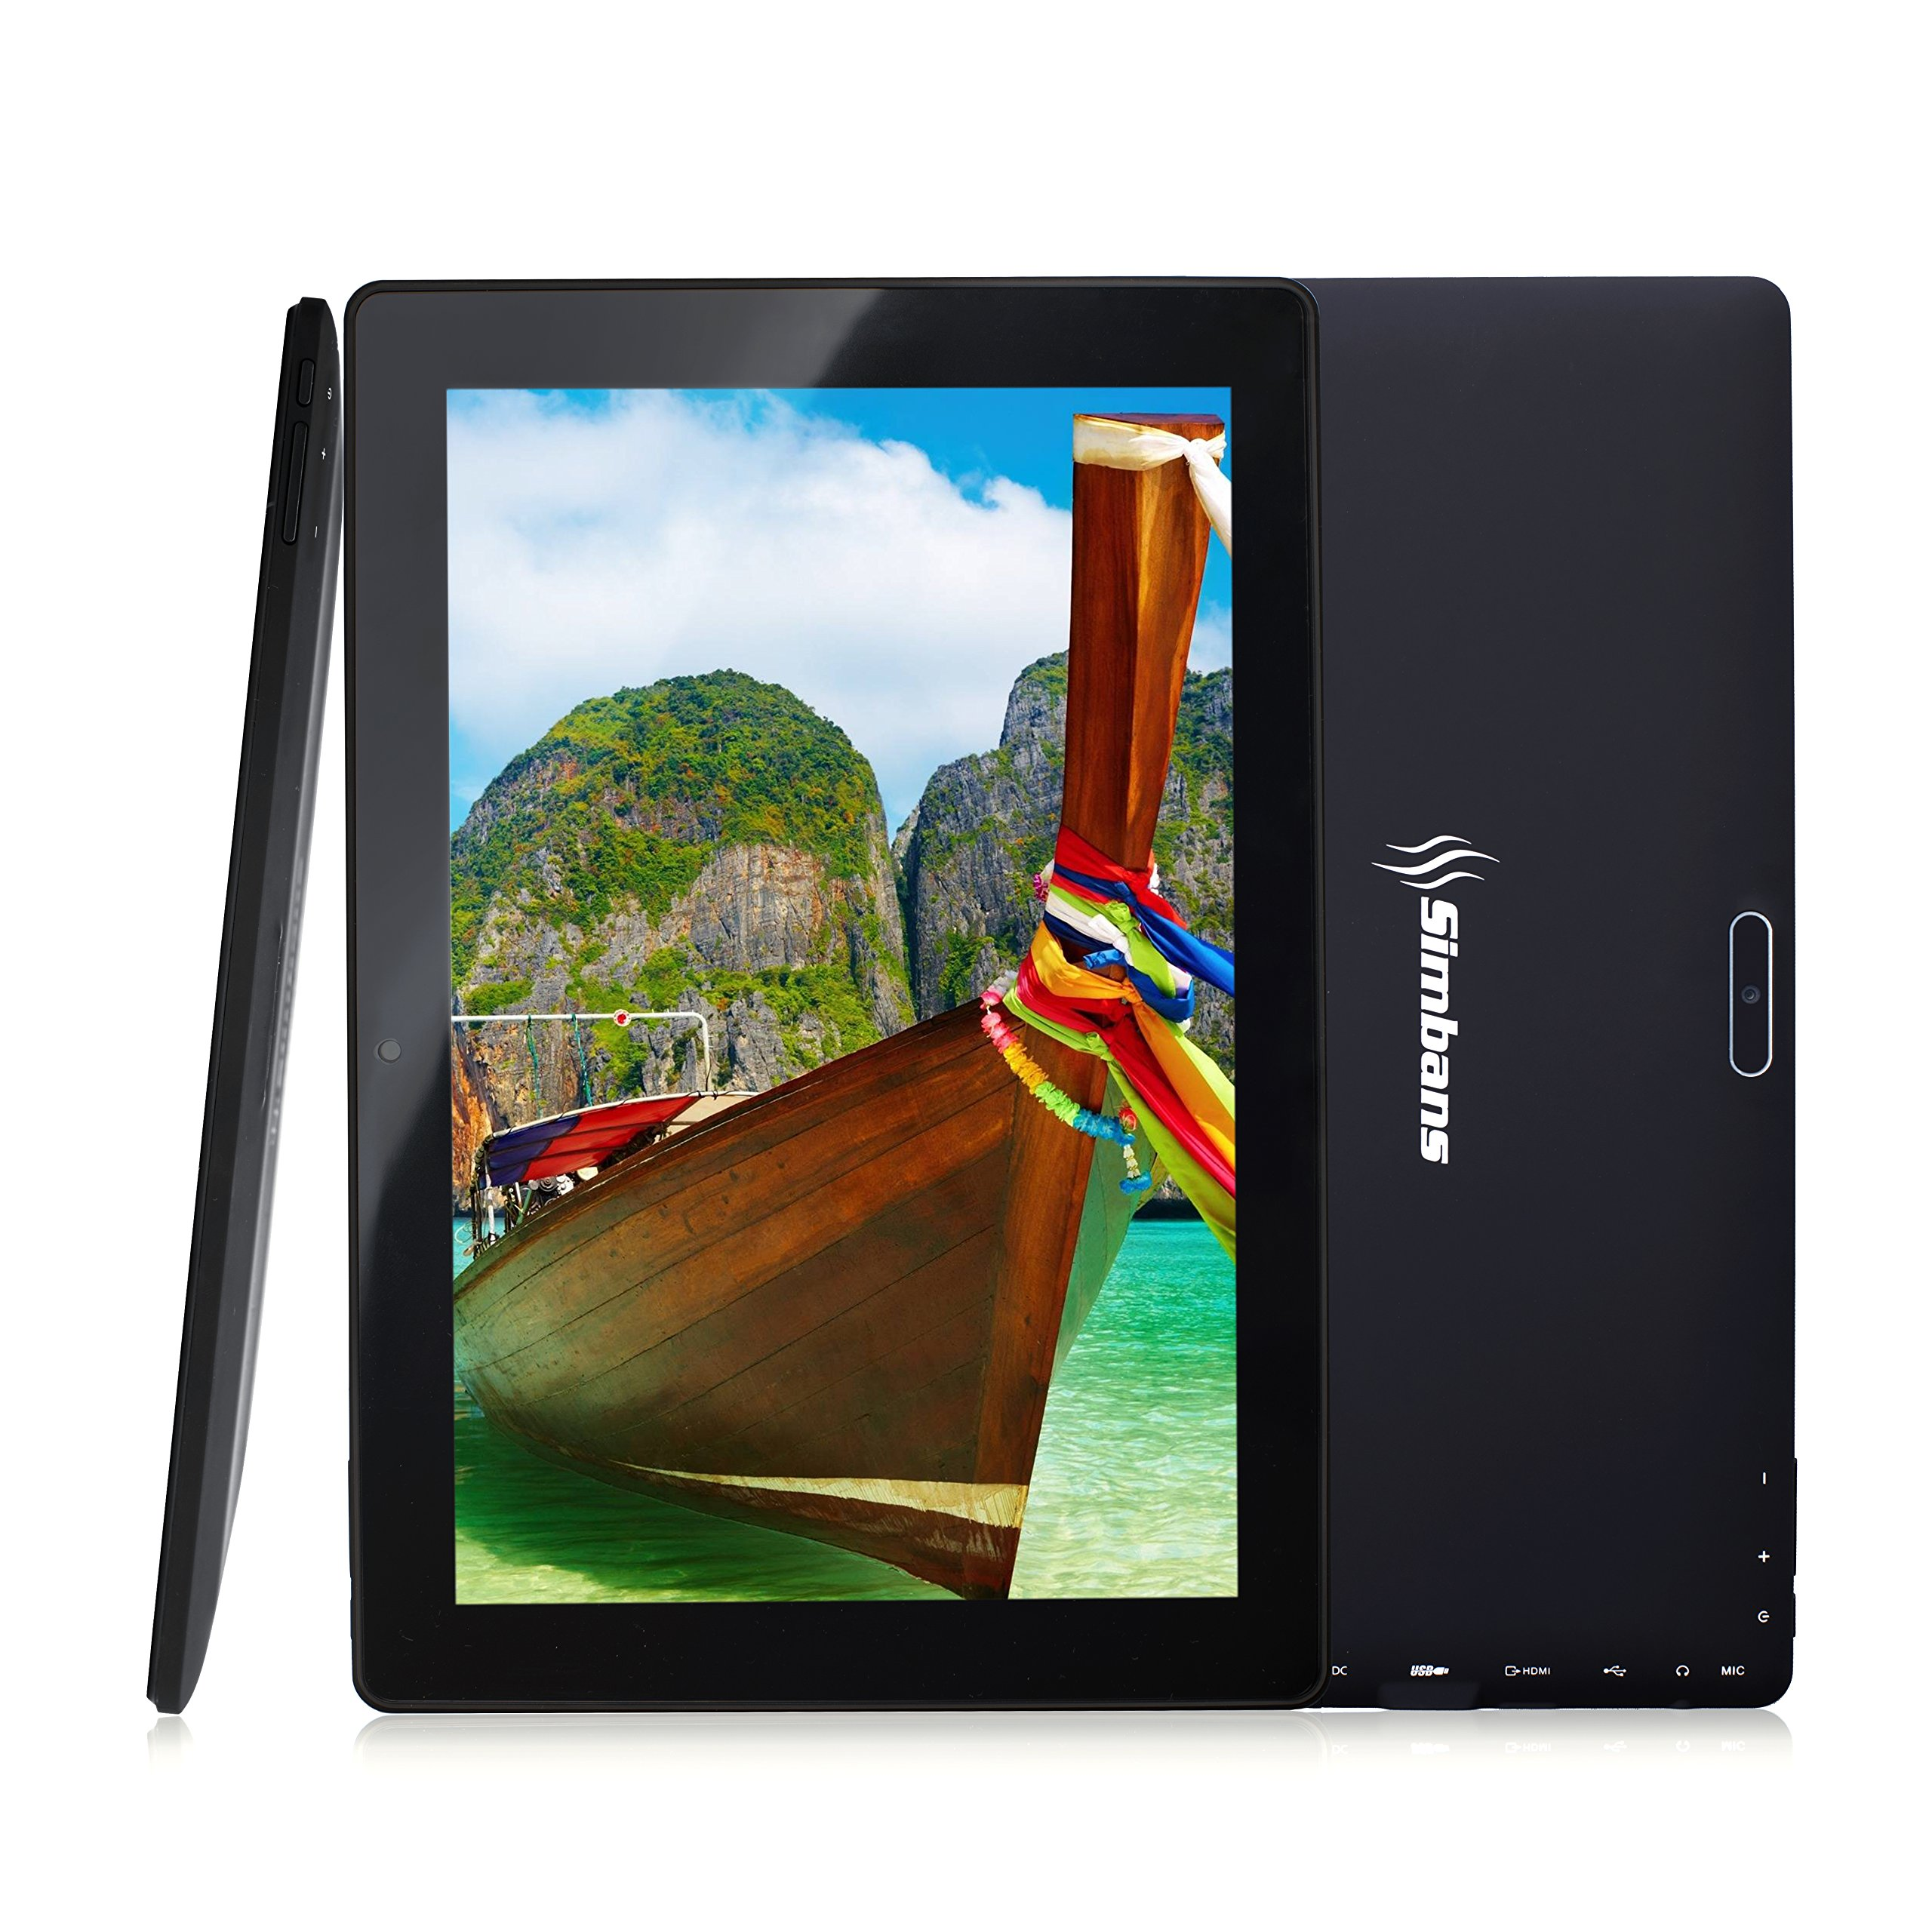 [3 Bonus item] Simbans TangoTab 10 Inch Tablet 2GB RAM + 32GB Disk Android 7.0 Nougat, 10.1 Inch IPS screen, Quad Core, HDMI, 2 + 5 MP Camera, GPS, WiFi, USB, Bluetooth - 2018 Edition PC Computer by Simbans